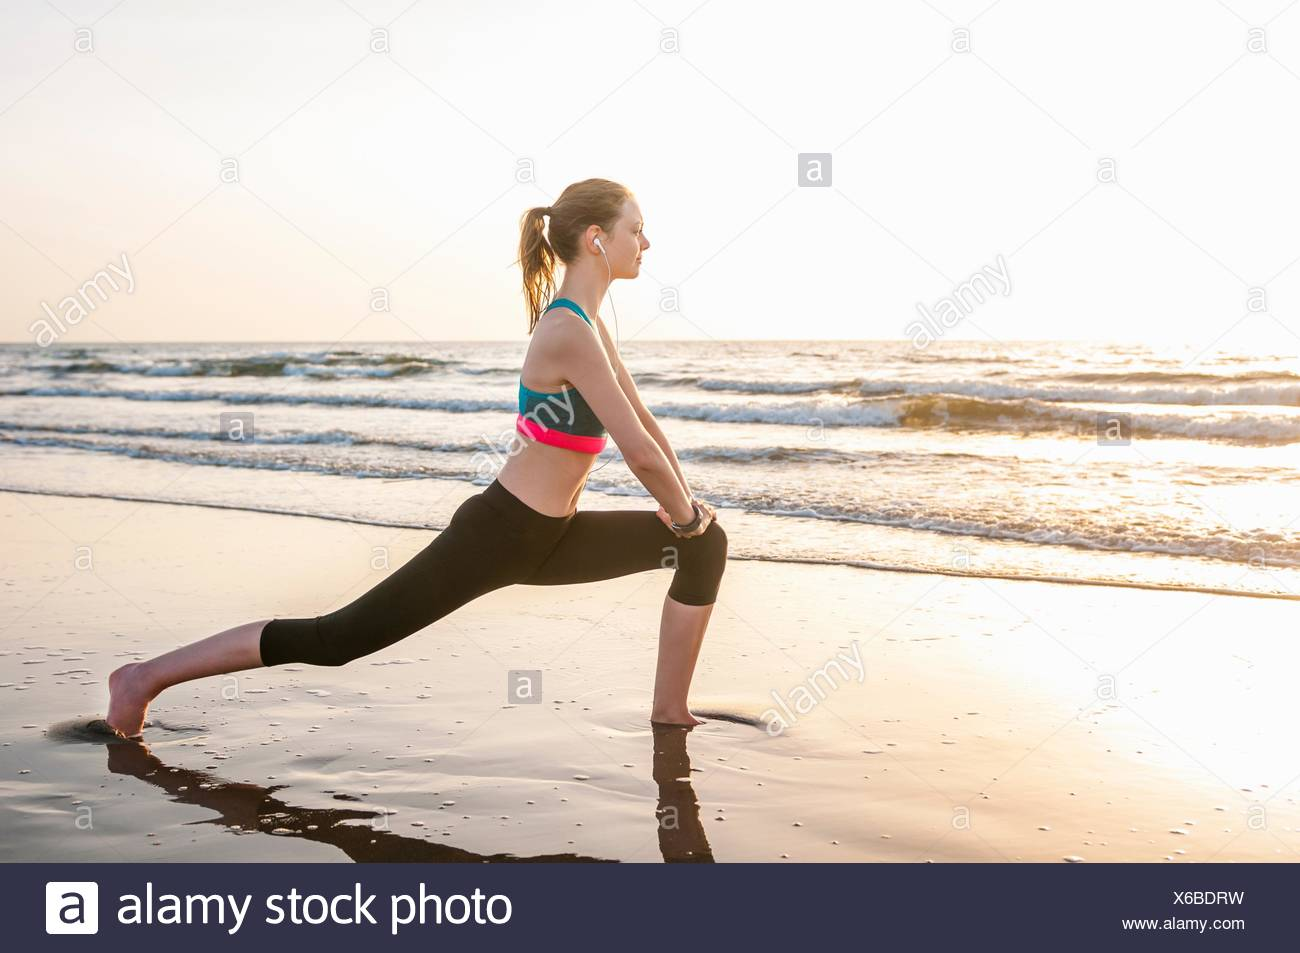 Side view of mid adult woman by ocean doing lunge, hands on knees Stock Photo